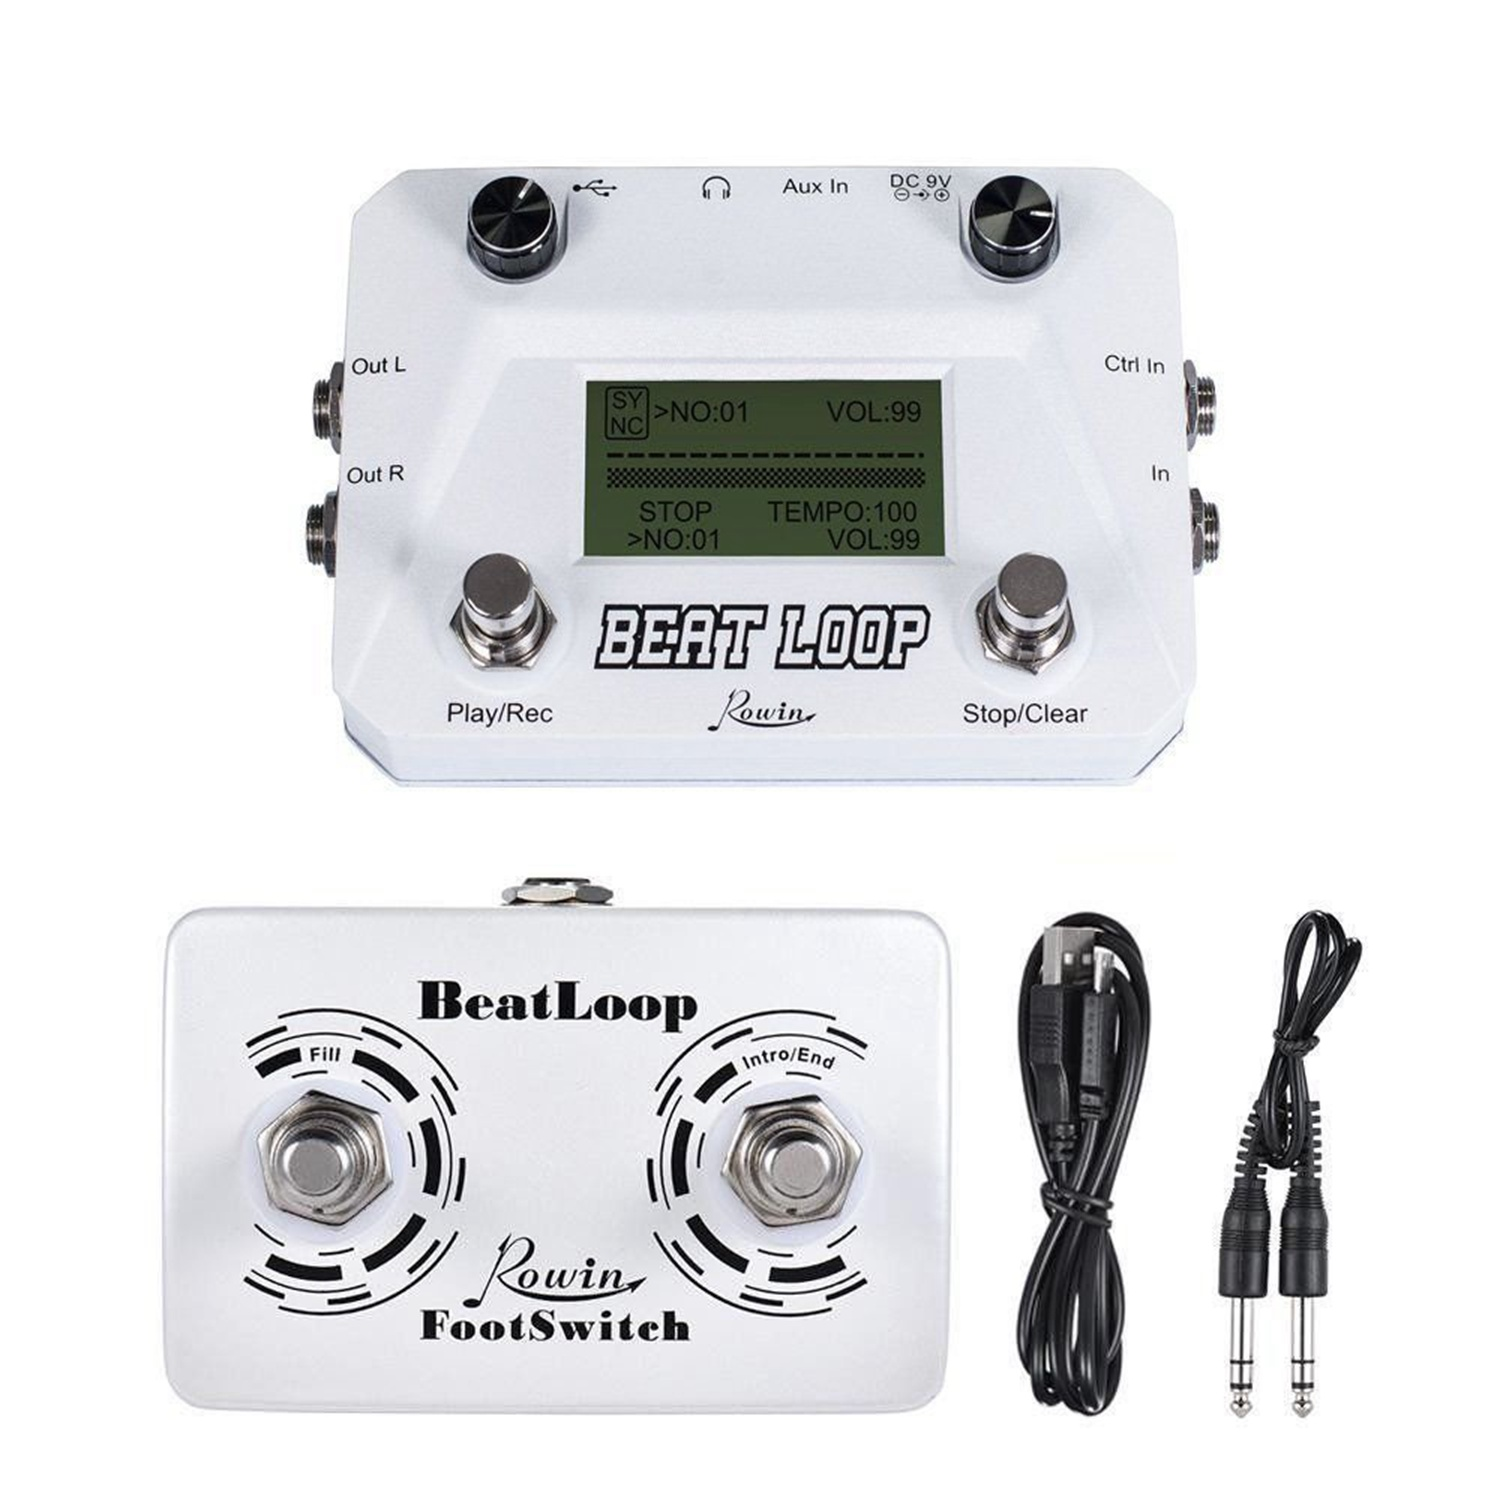 BMDT Rowin Lbl 01 Guitar Beat Loop Drum Machine With Foot Switch 3 Different Modes Usb